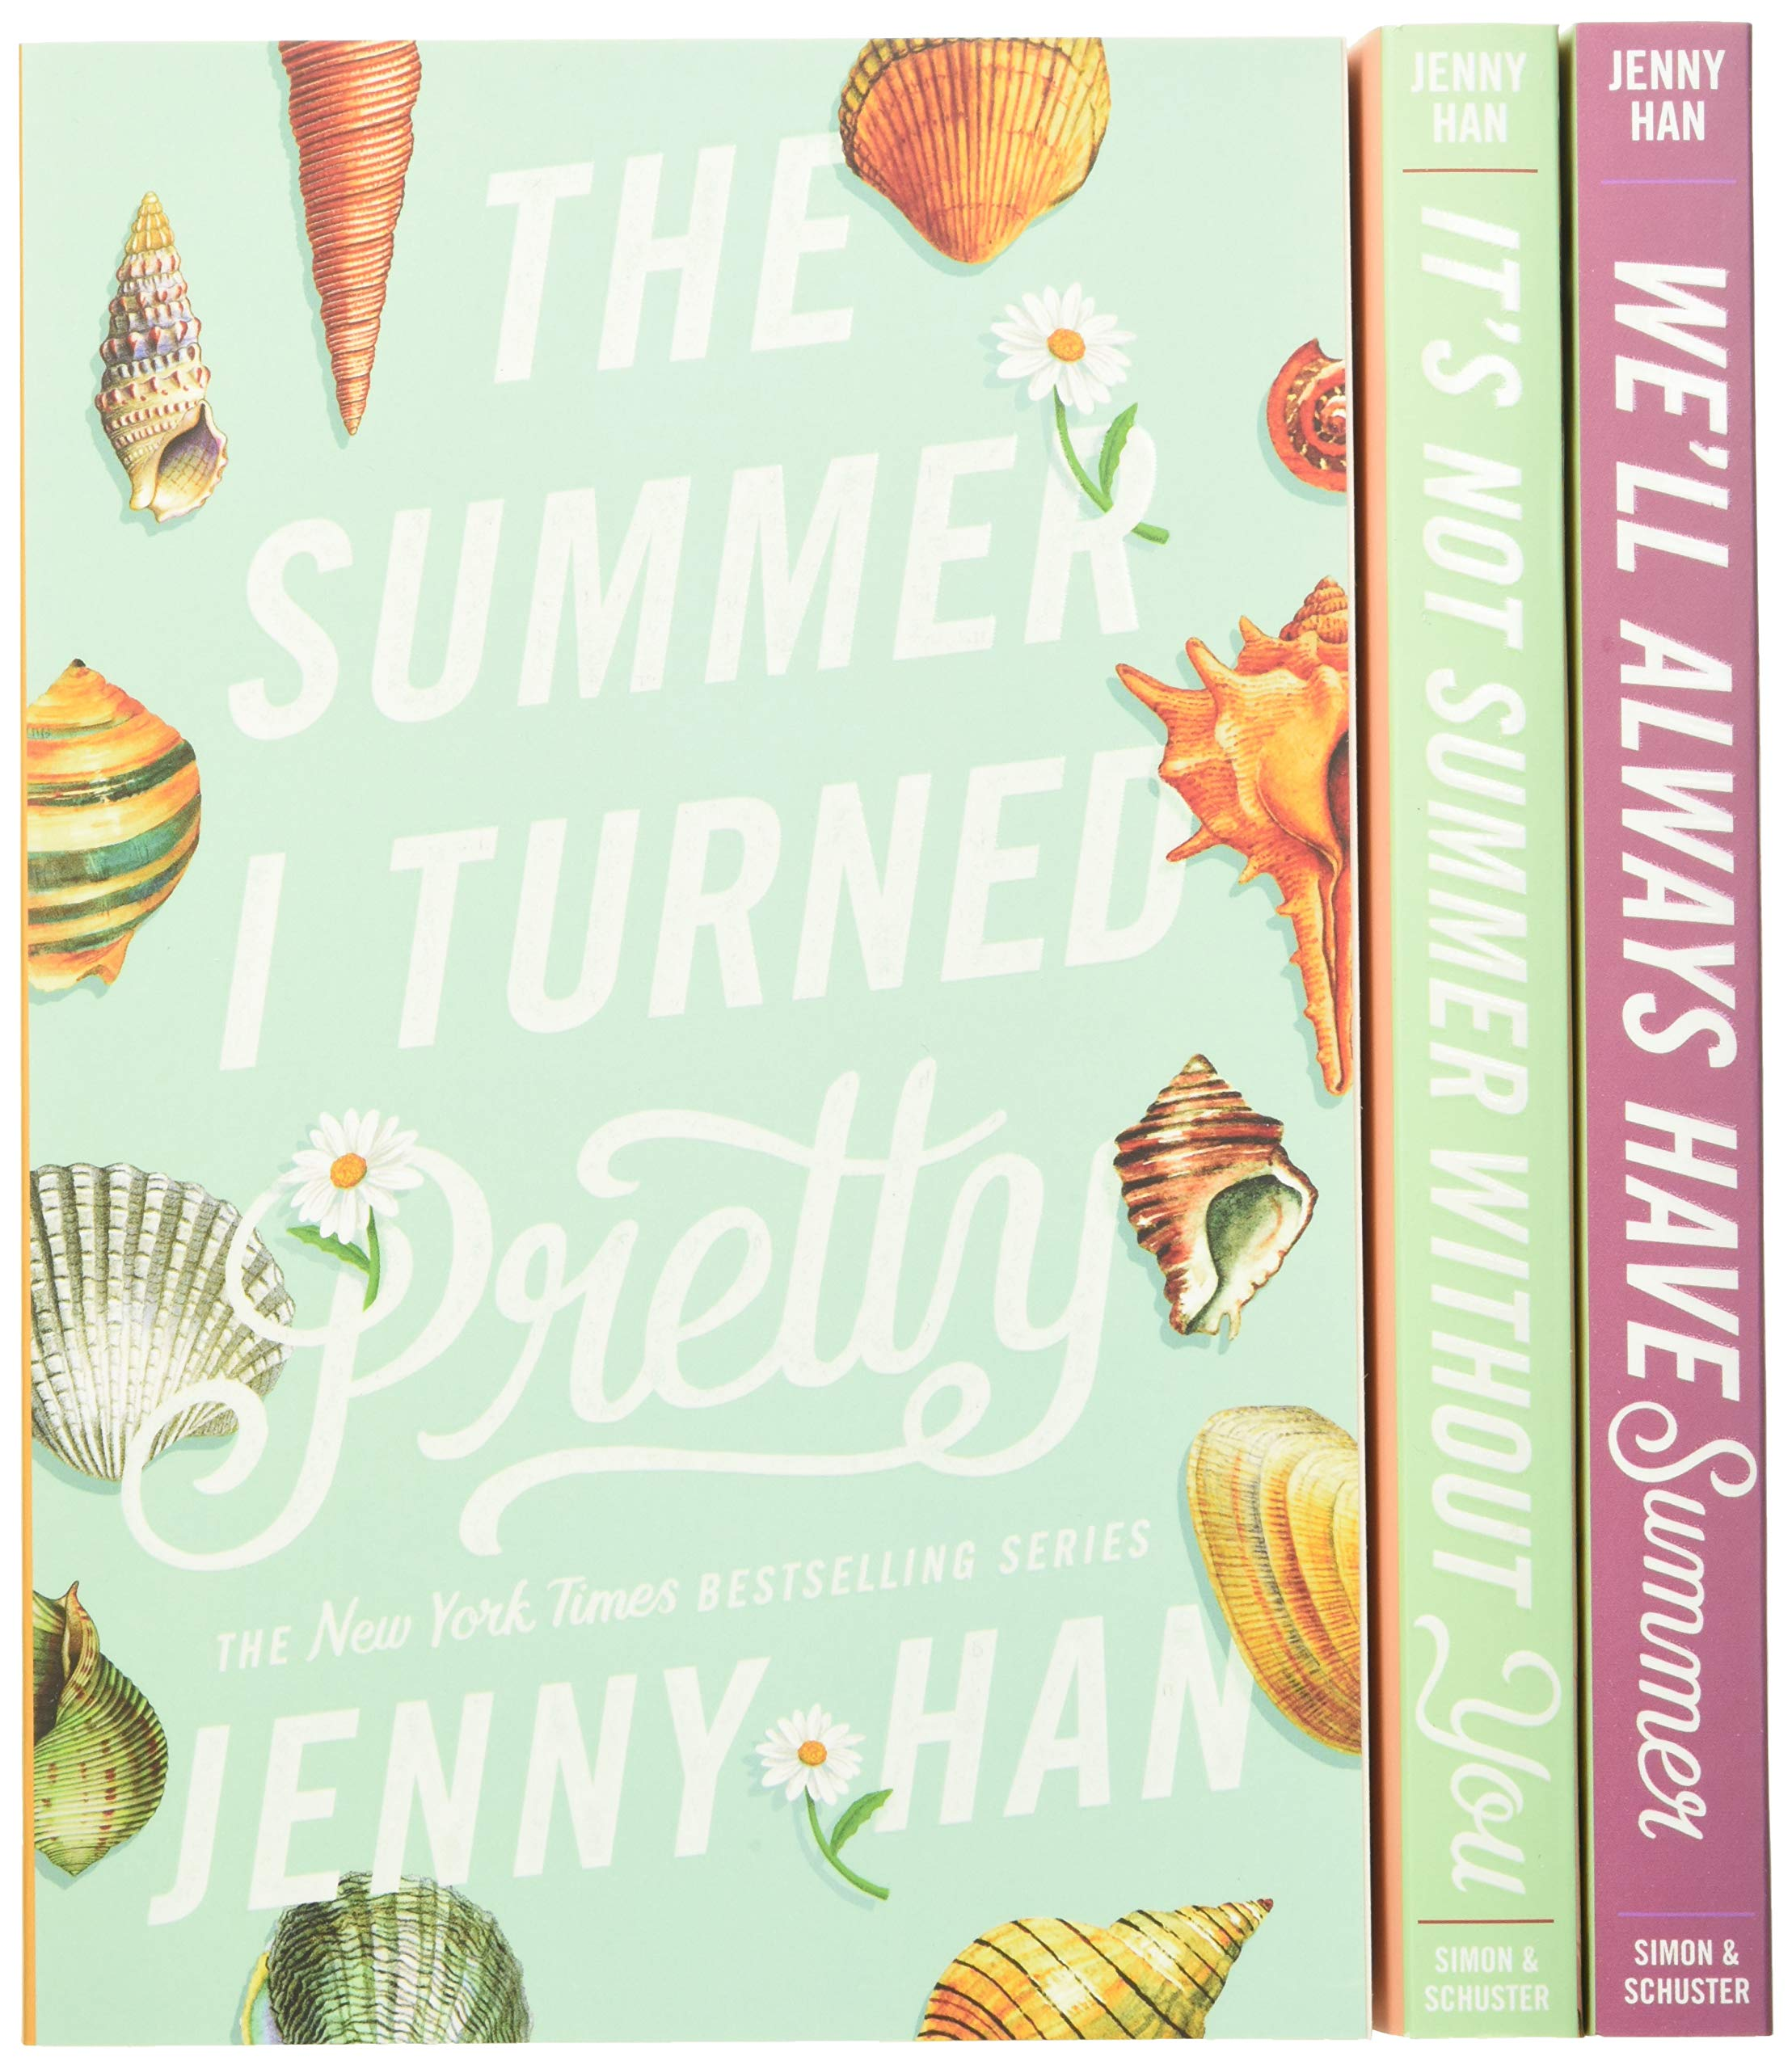 The Complete Summer I Turned Pretty Trilogy Amazon Co Uk Han Jenny Books